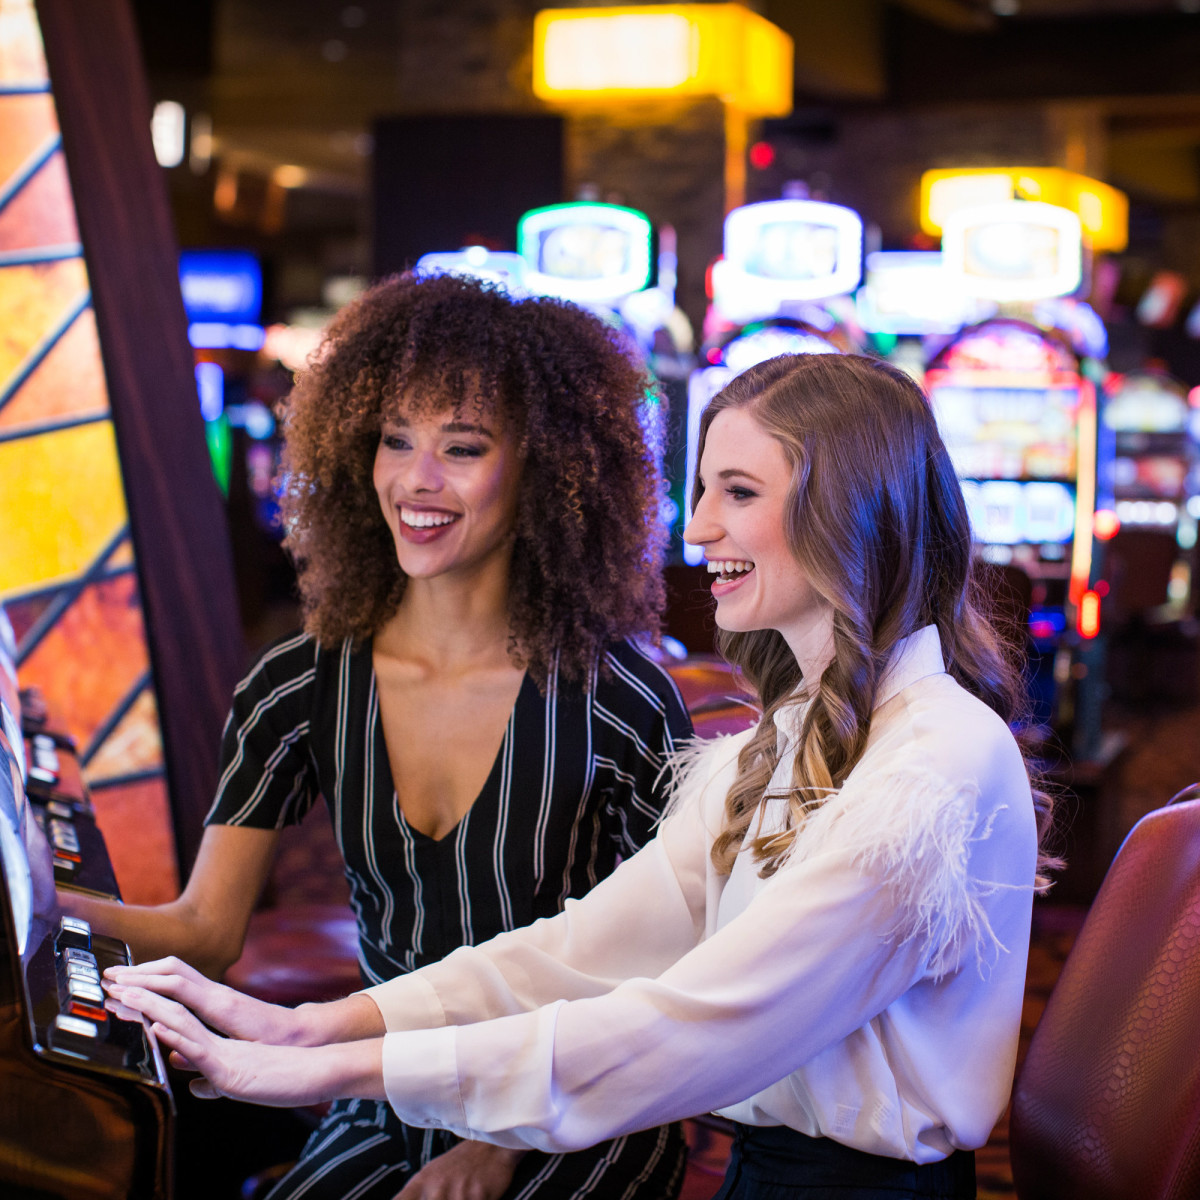 Women playing slot machines